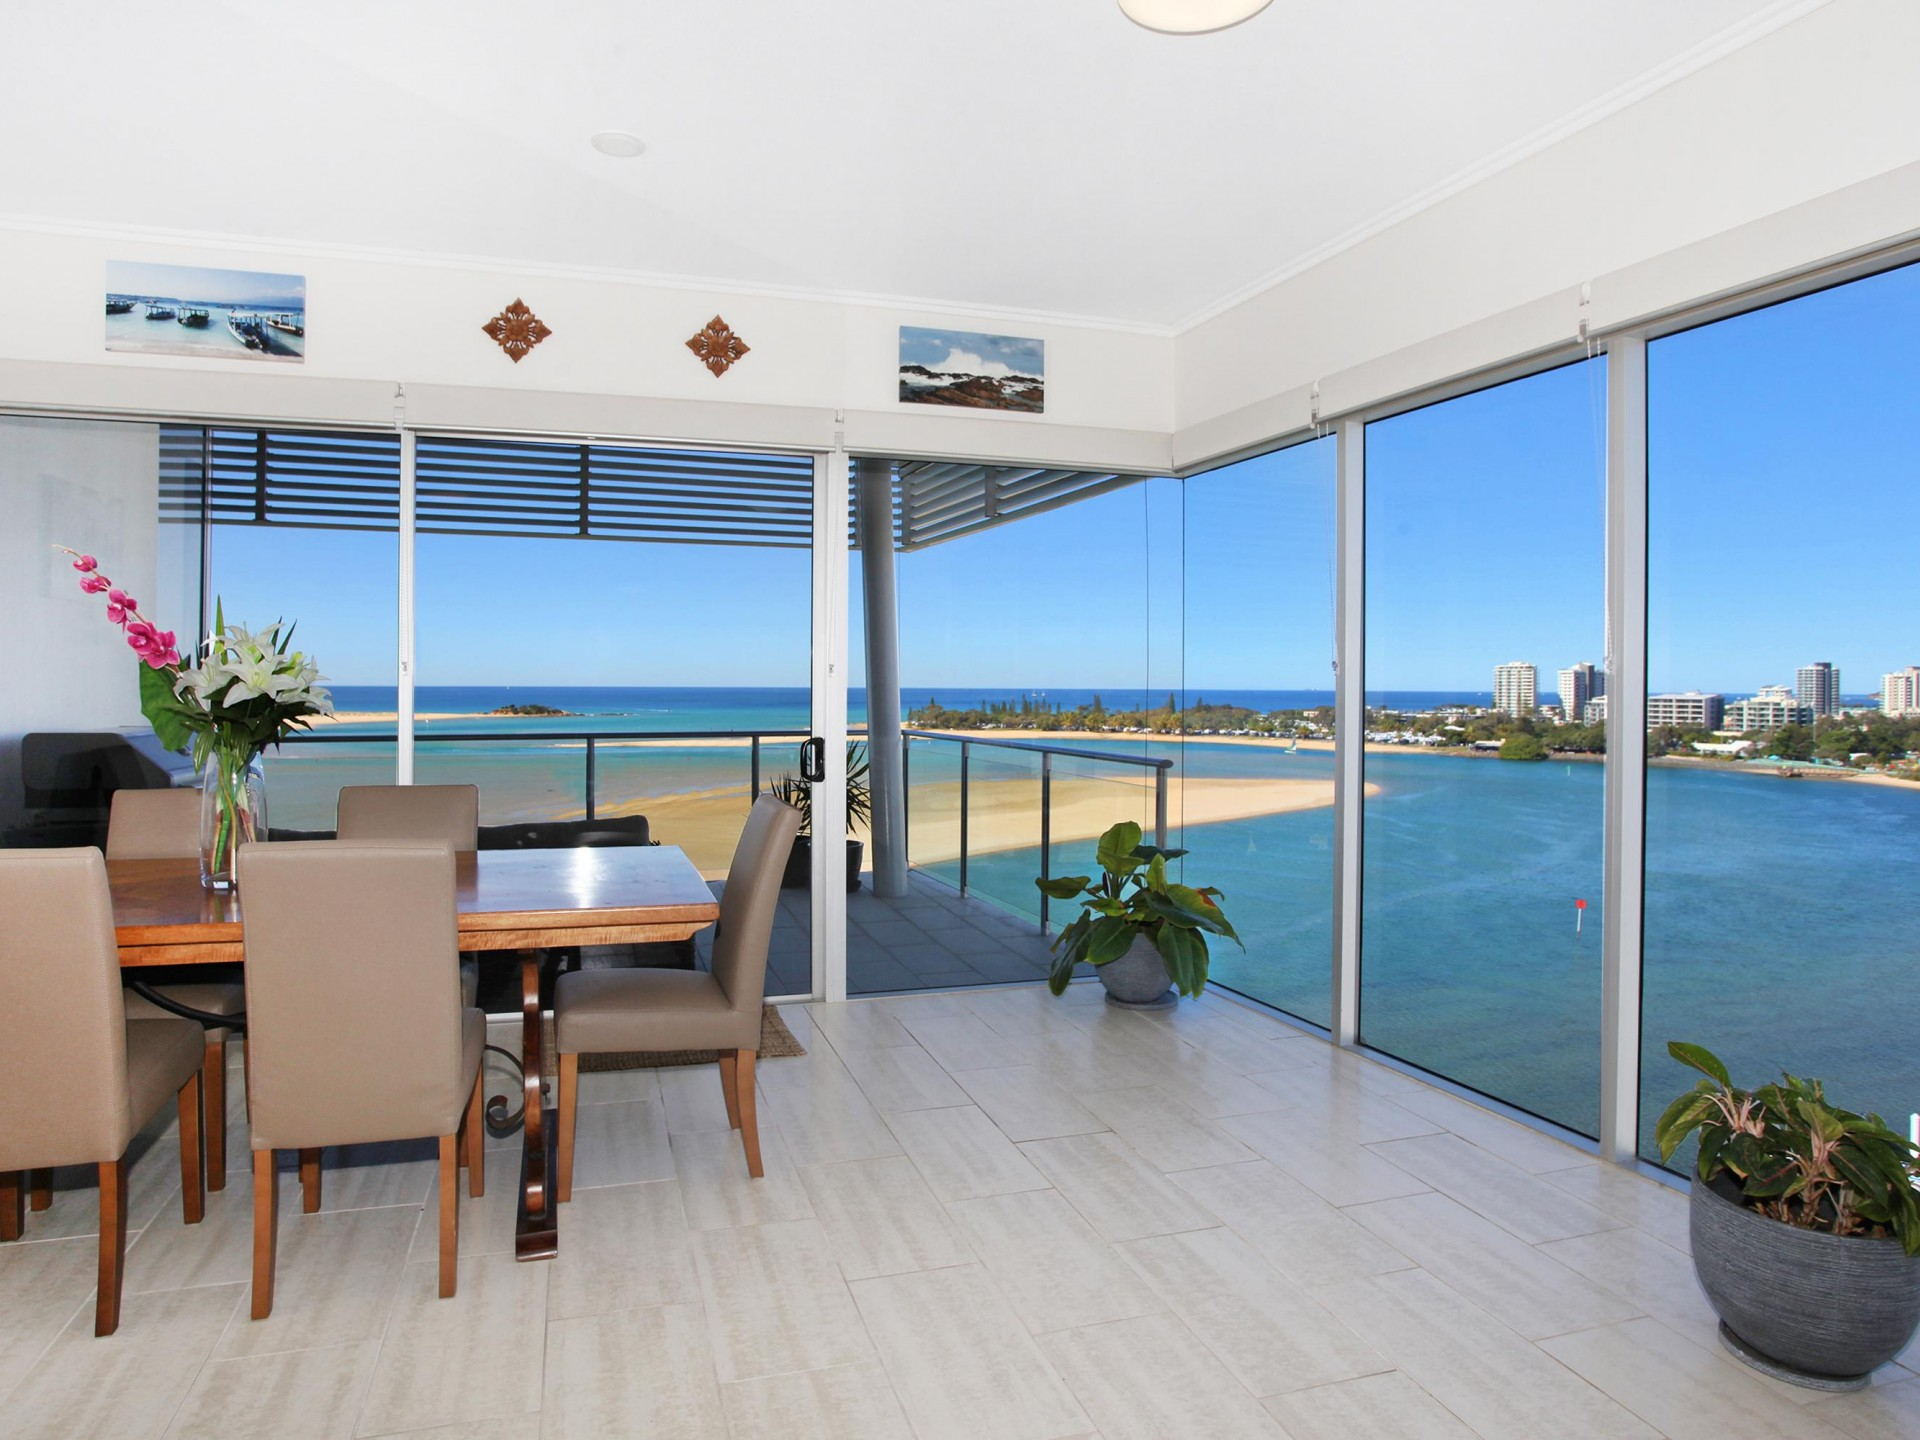 PENTHOUSE ABSOLUTE WATERFRONT WITH AMAZING RIVER/OCEAN VIEWS!